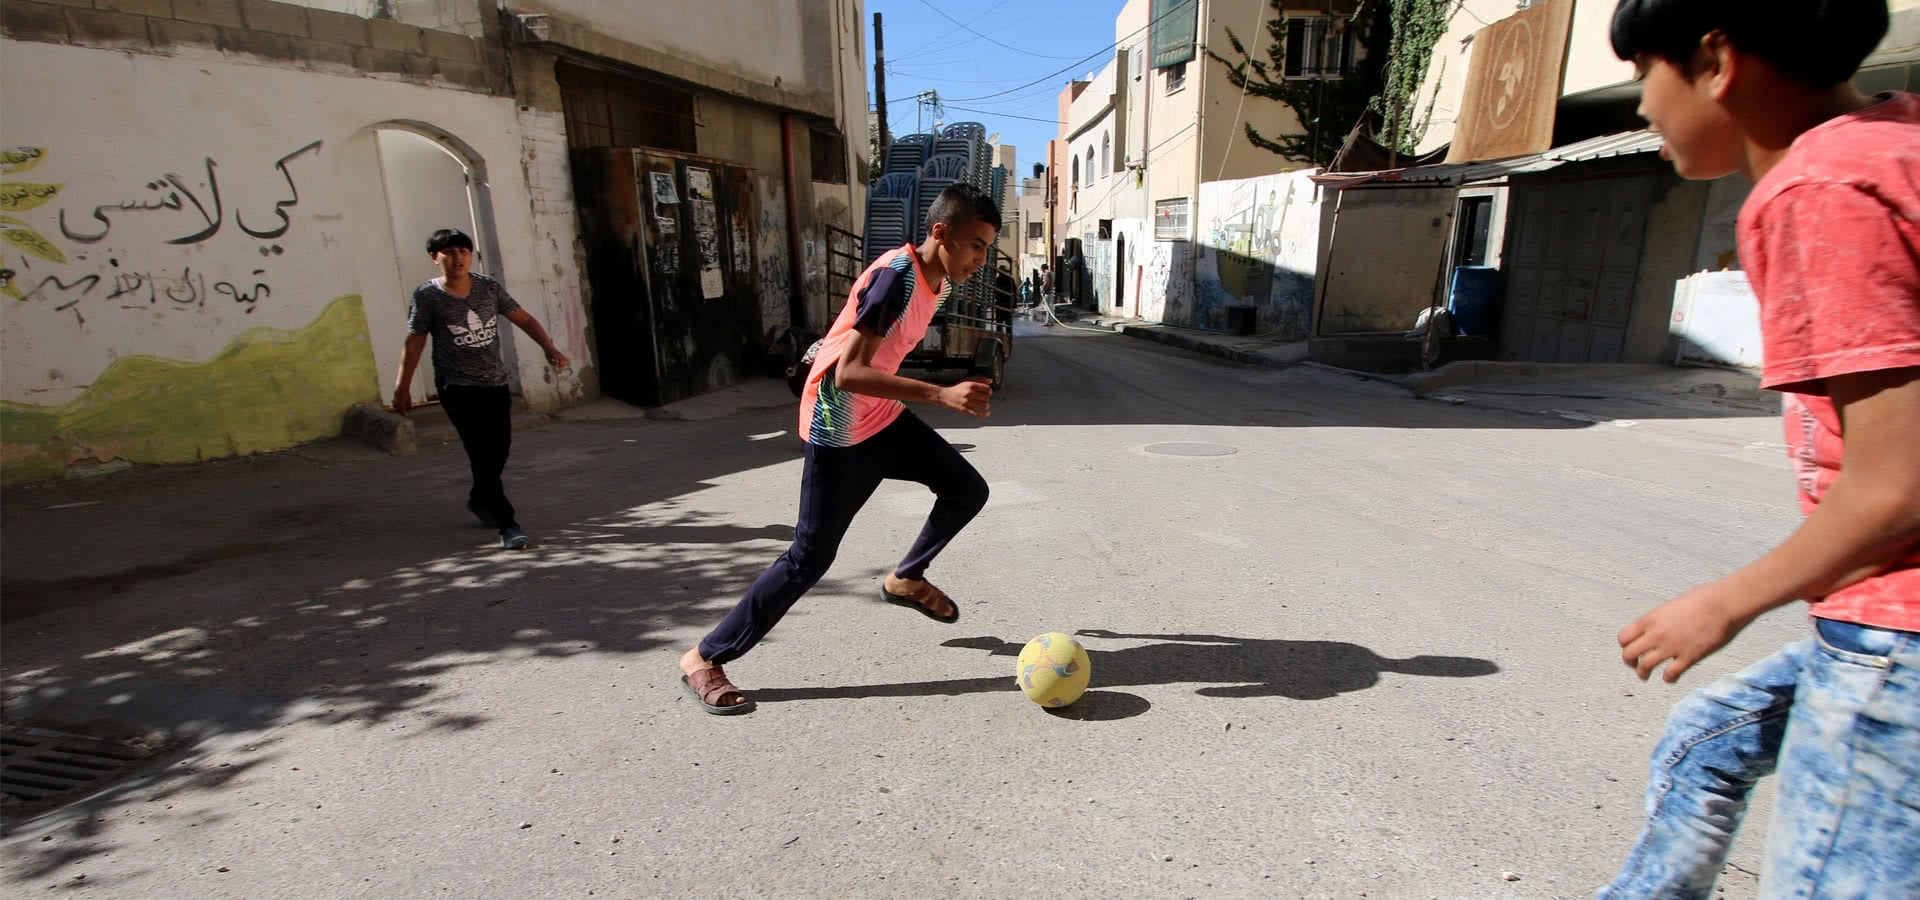 Palestinian children play soccer in the streets of Jenin refugee camp in the northern West Bank on May 11, 2017. (Photo: DCIP / Ahmad al-Bazz)